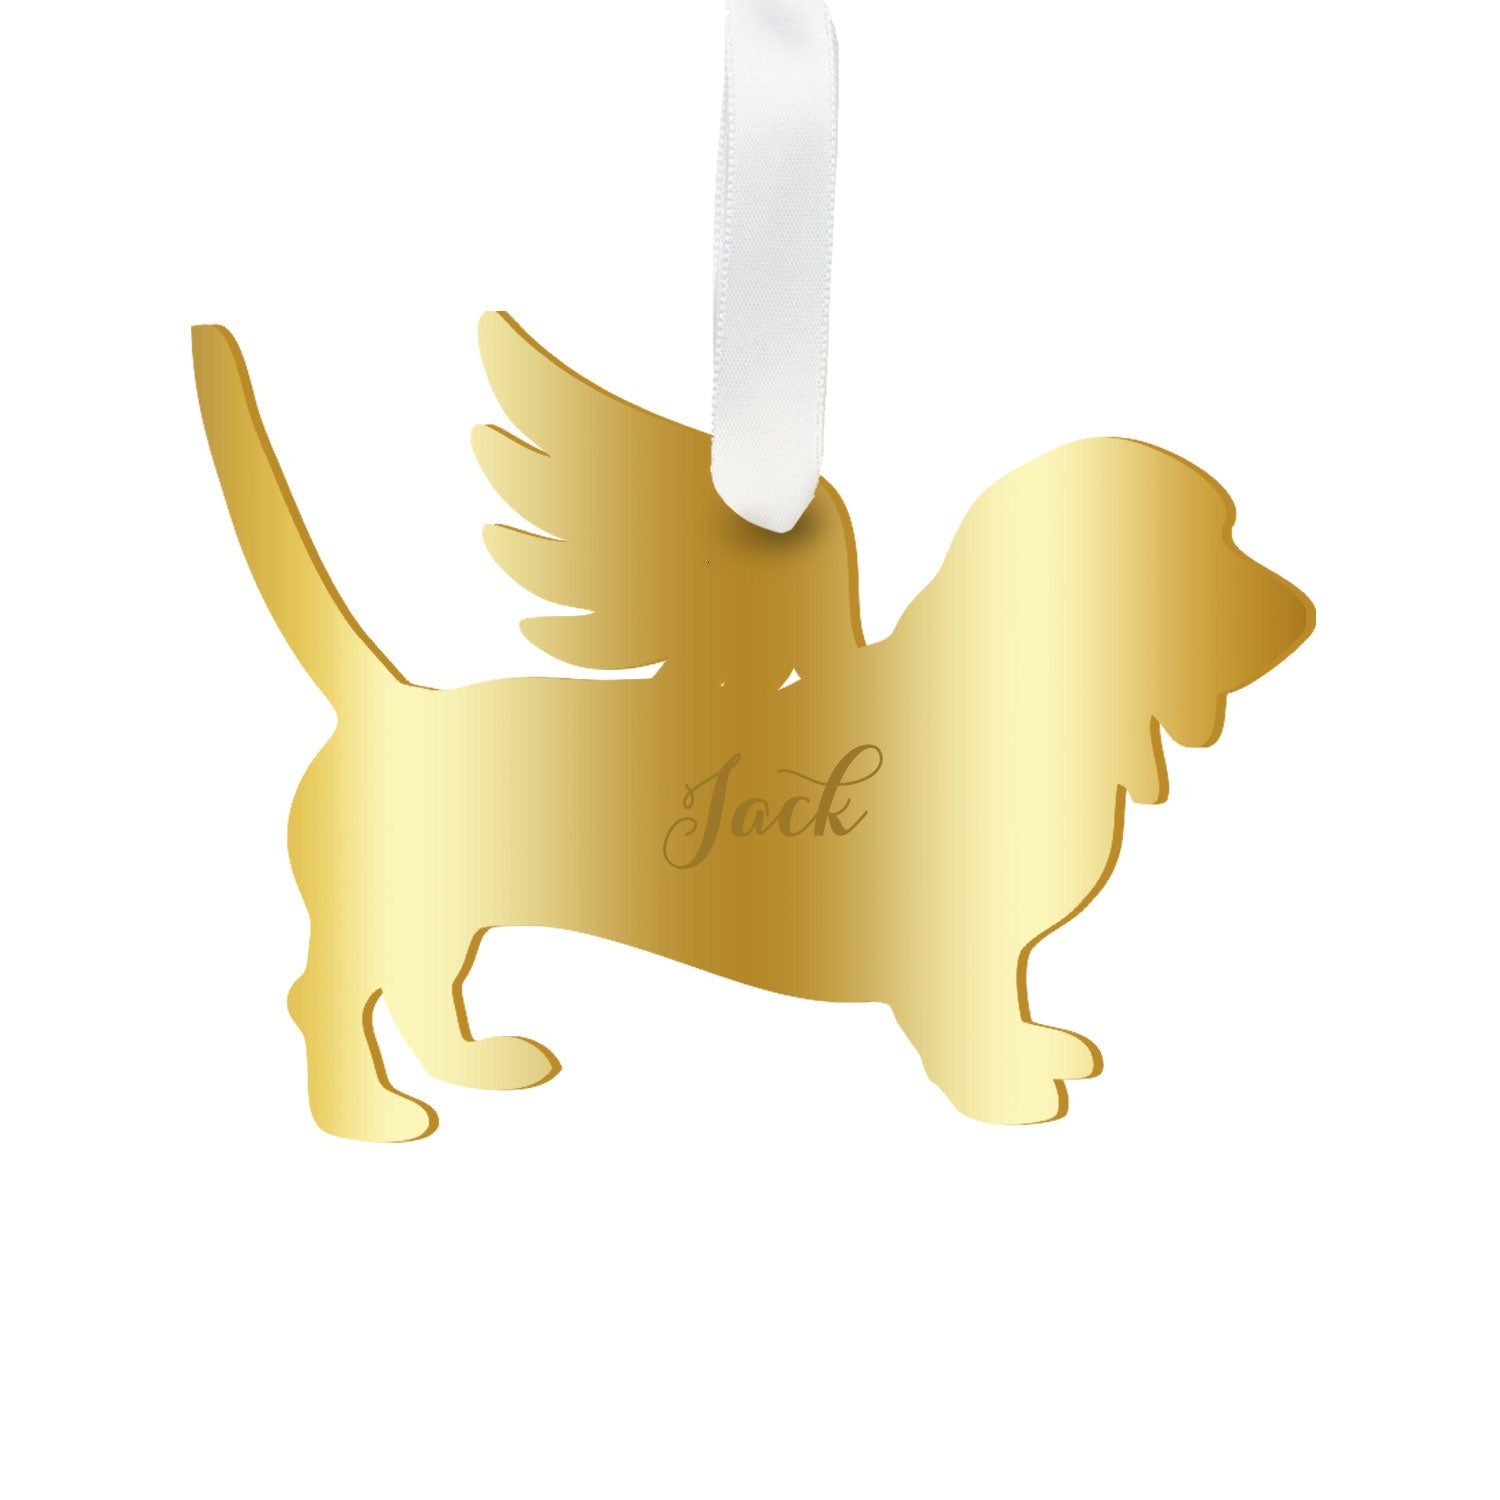 Moon and Lola - Personalized Angel Basset Hound Ornament with wings in mirrored gold